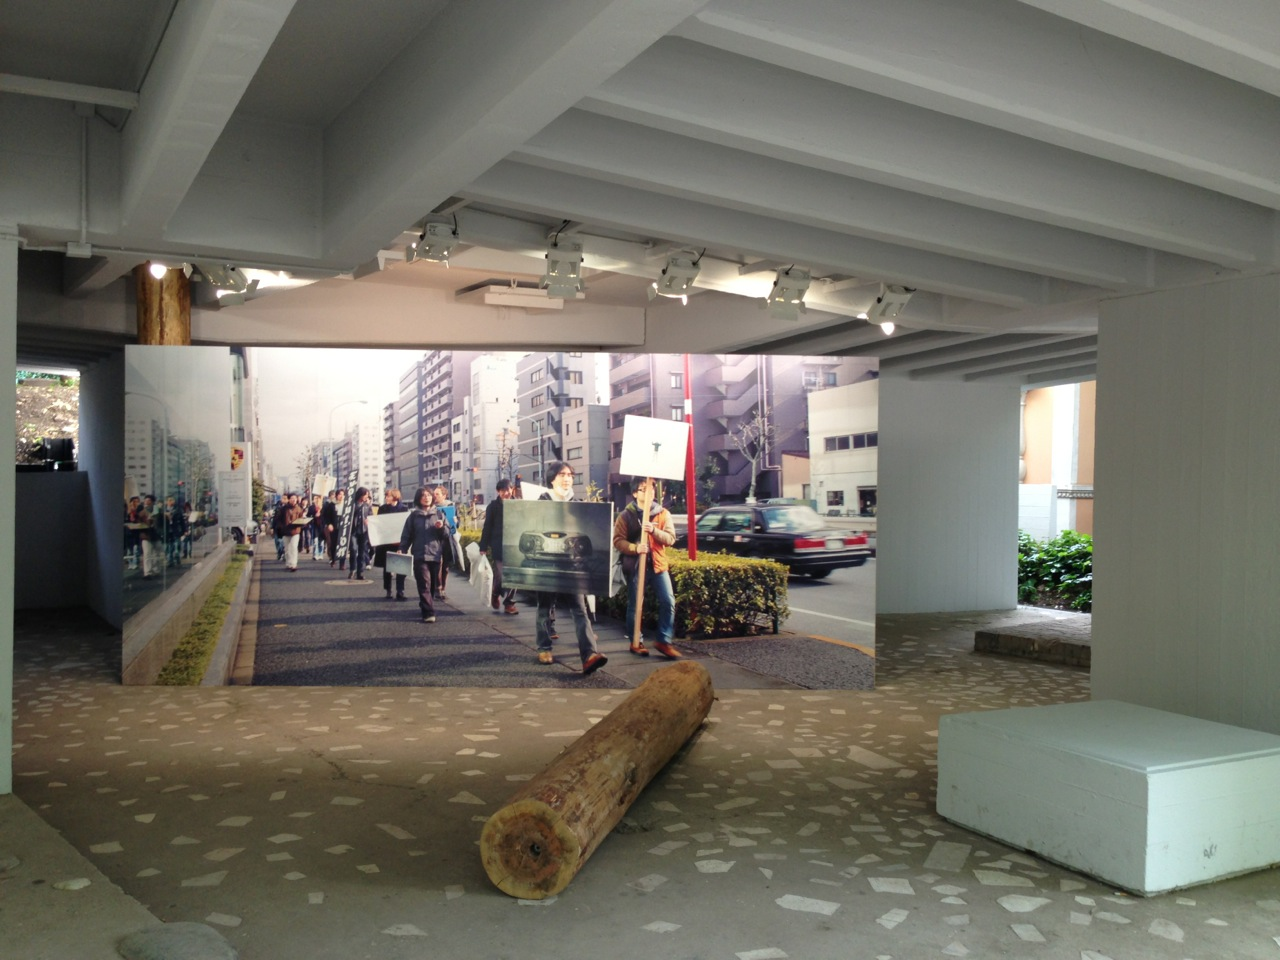 Japan Pavilion received a special mention at The 55th  Venice Biennale.